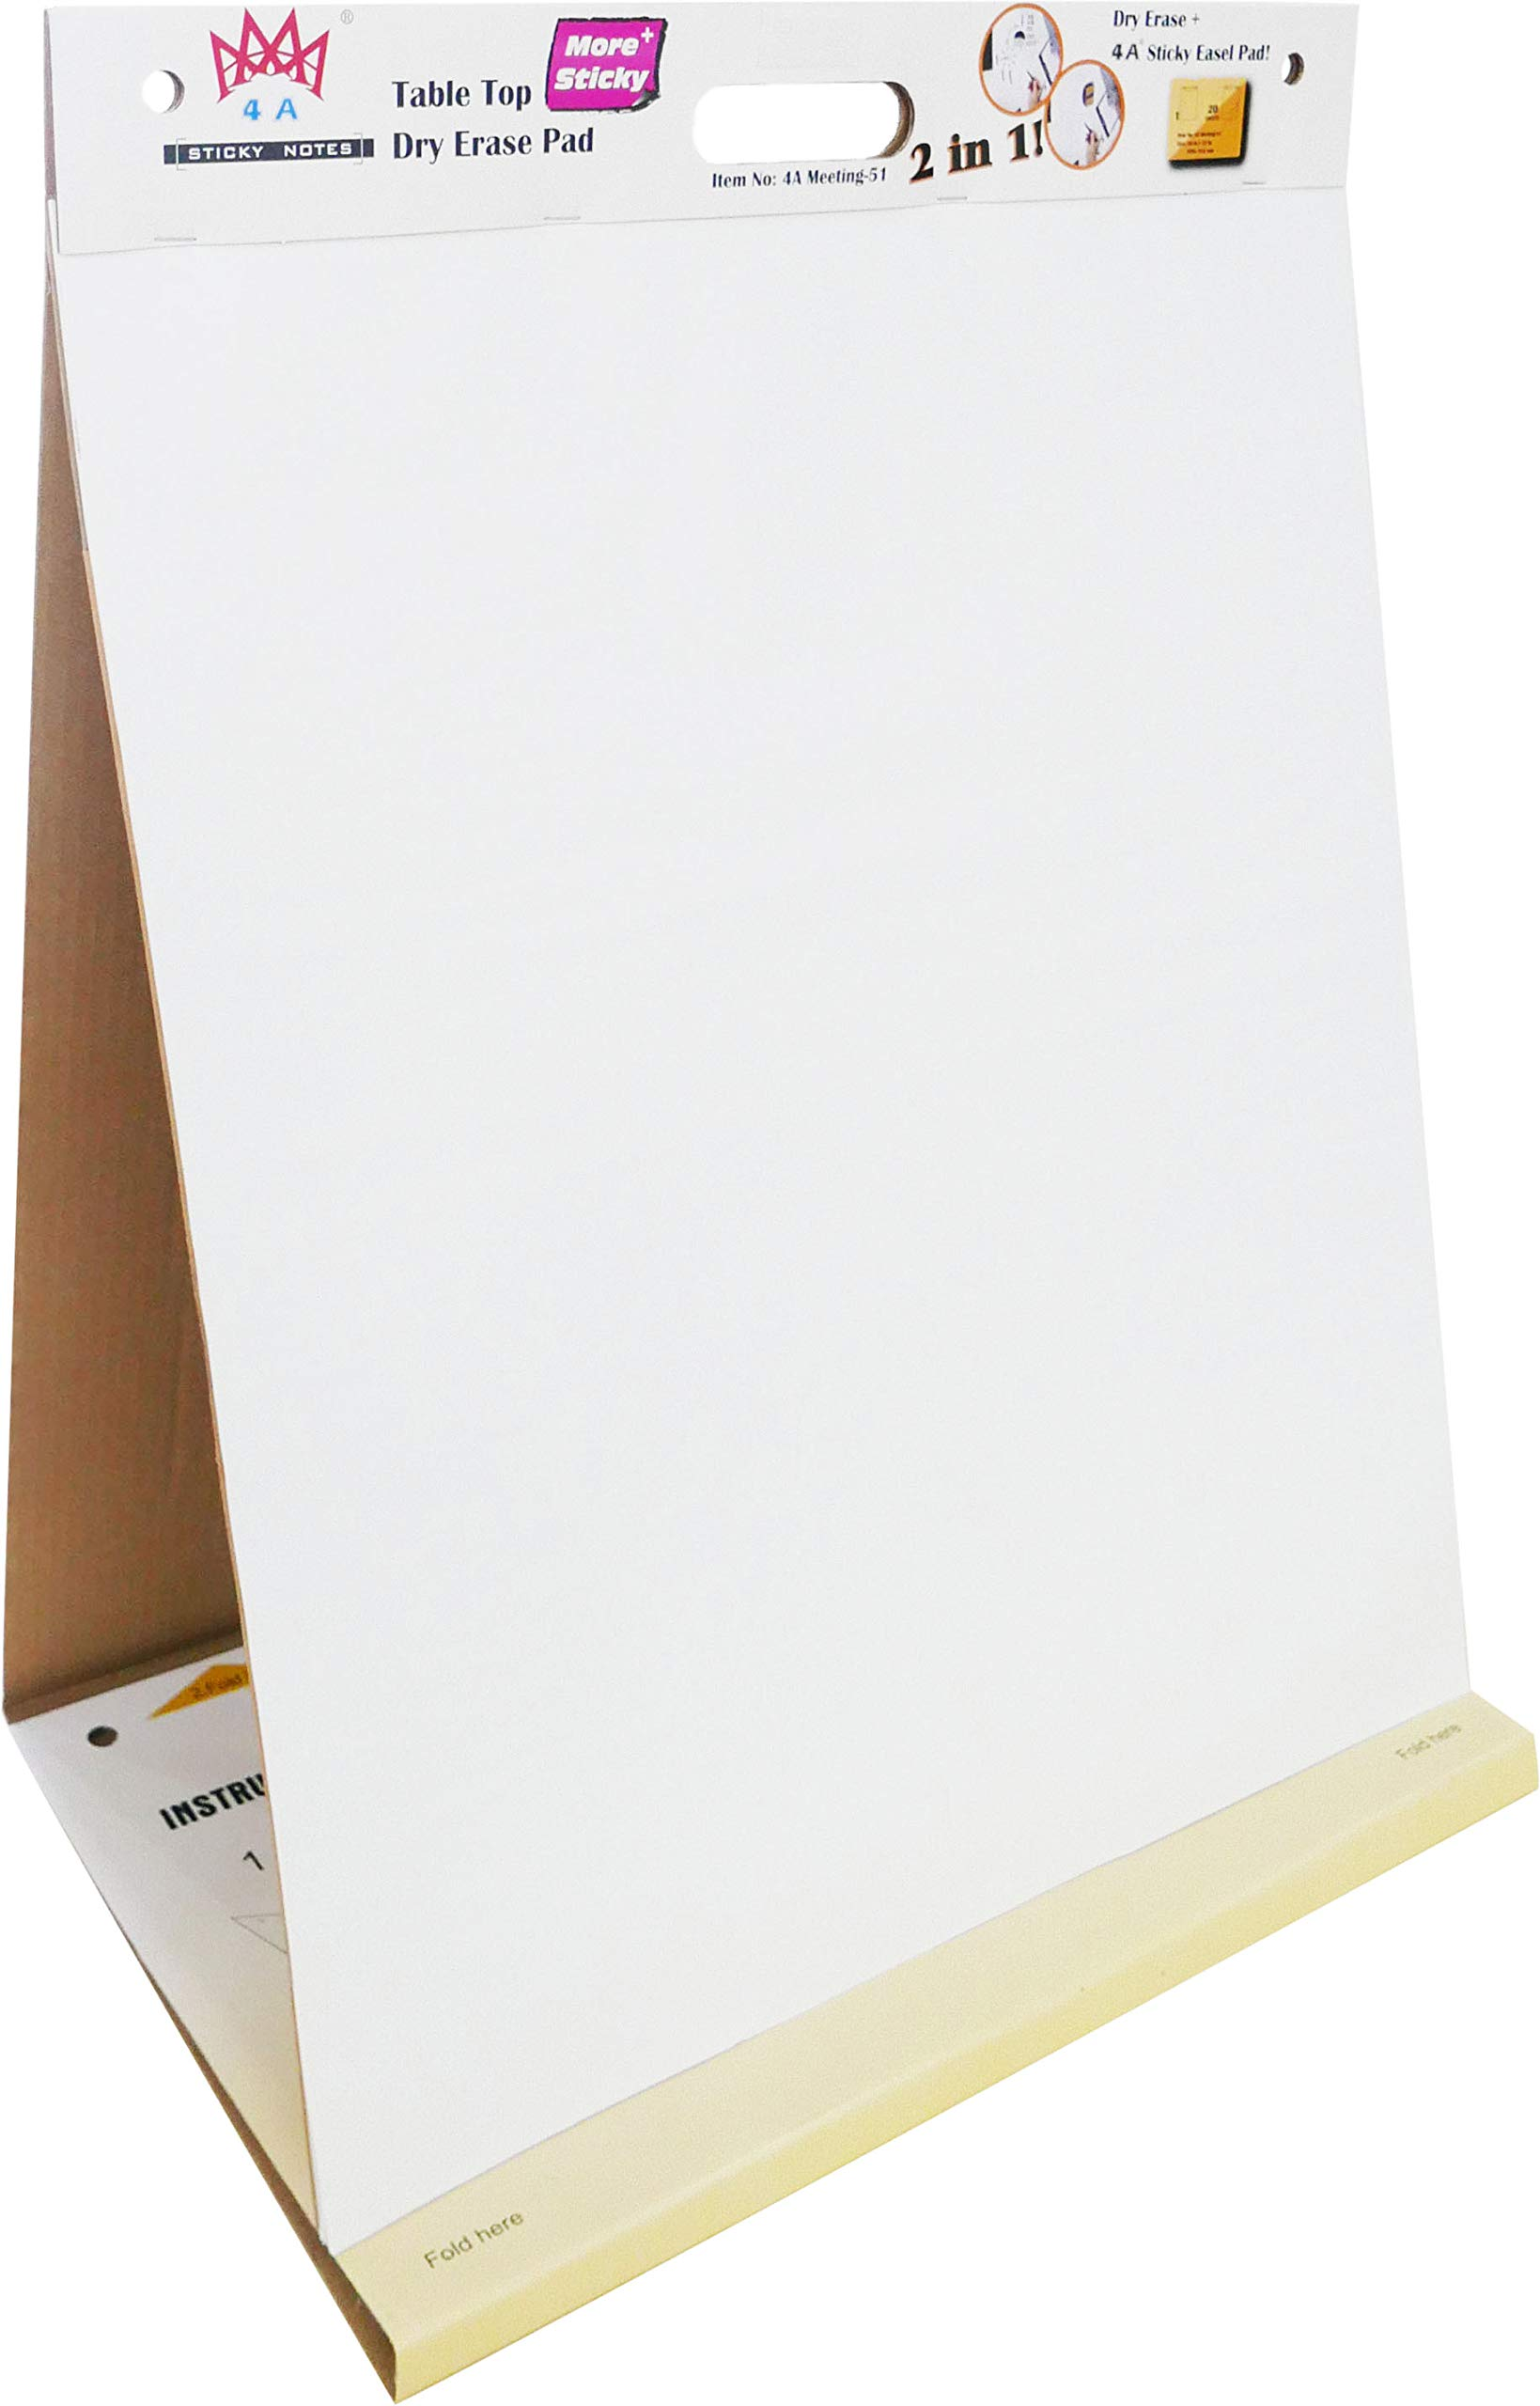 4A Super Sticky Table Top Dry Erase Pad + Easel Pad 2 In 1, Meeting Pad,Portable White Premium Flip Chart Paper,Self-Stick Built-in Easel Stand,20 x 23 Inches, 20 Sheets/Pad,1 Pad,4A Meeting-51